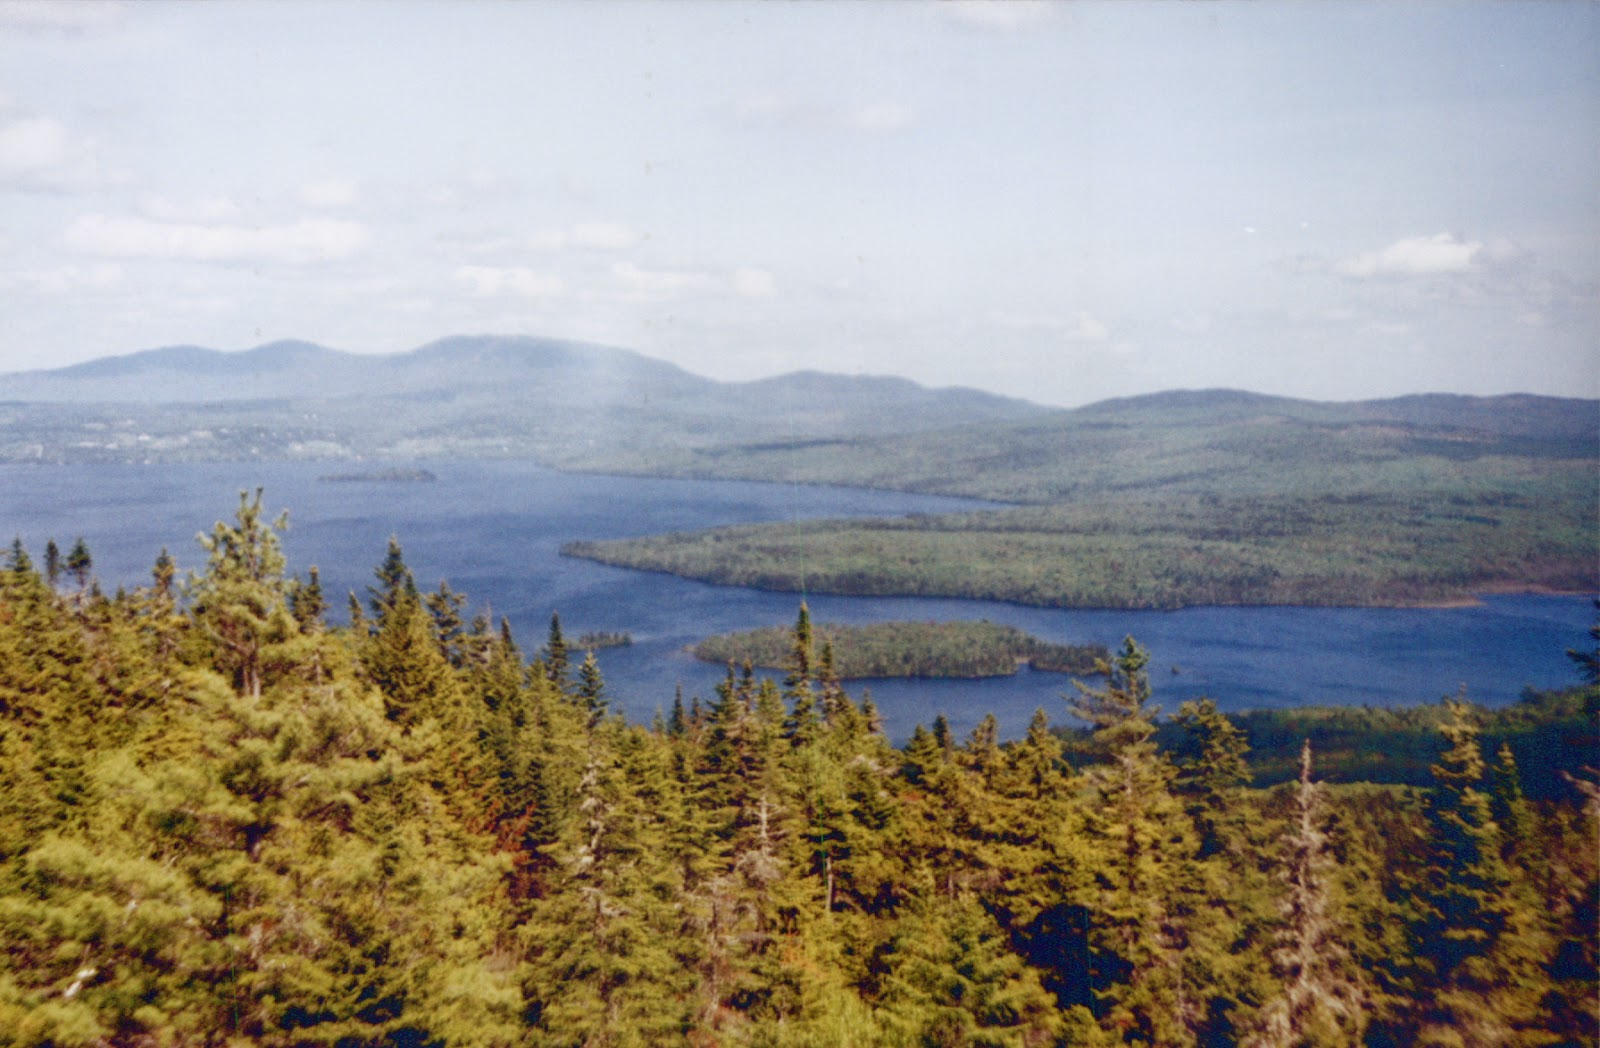 Rangeley, Maine from the Height of Land